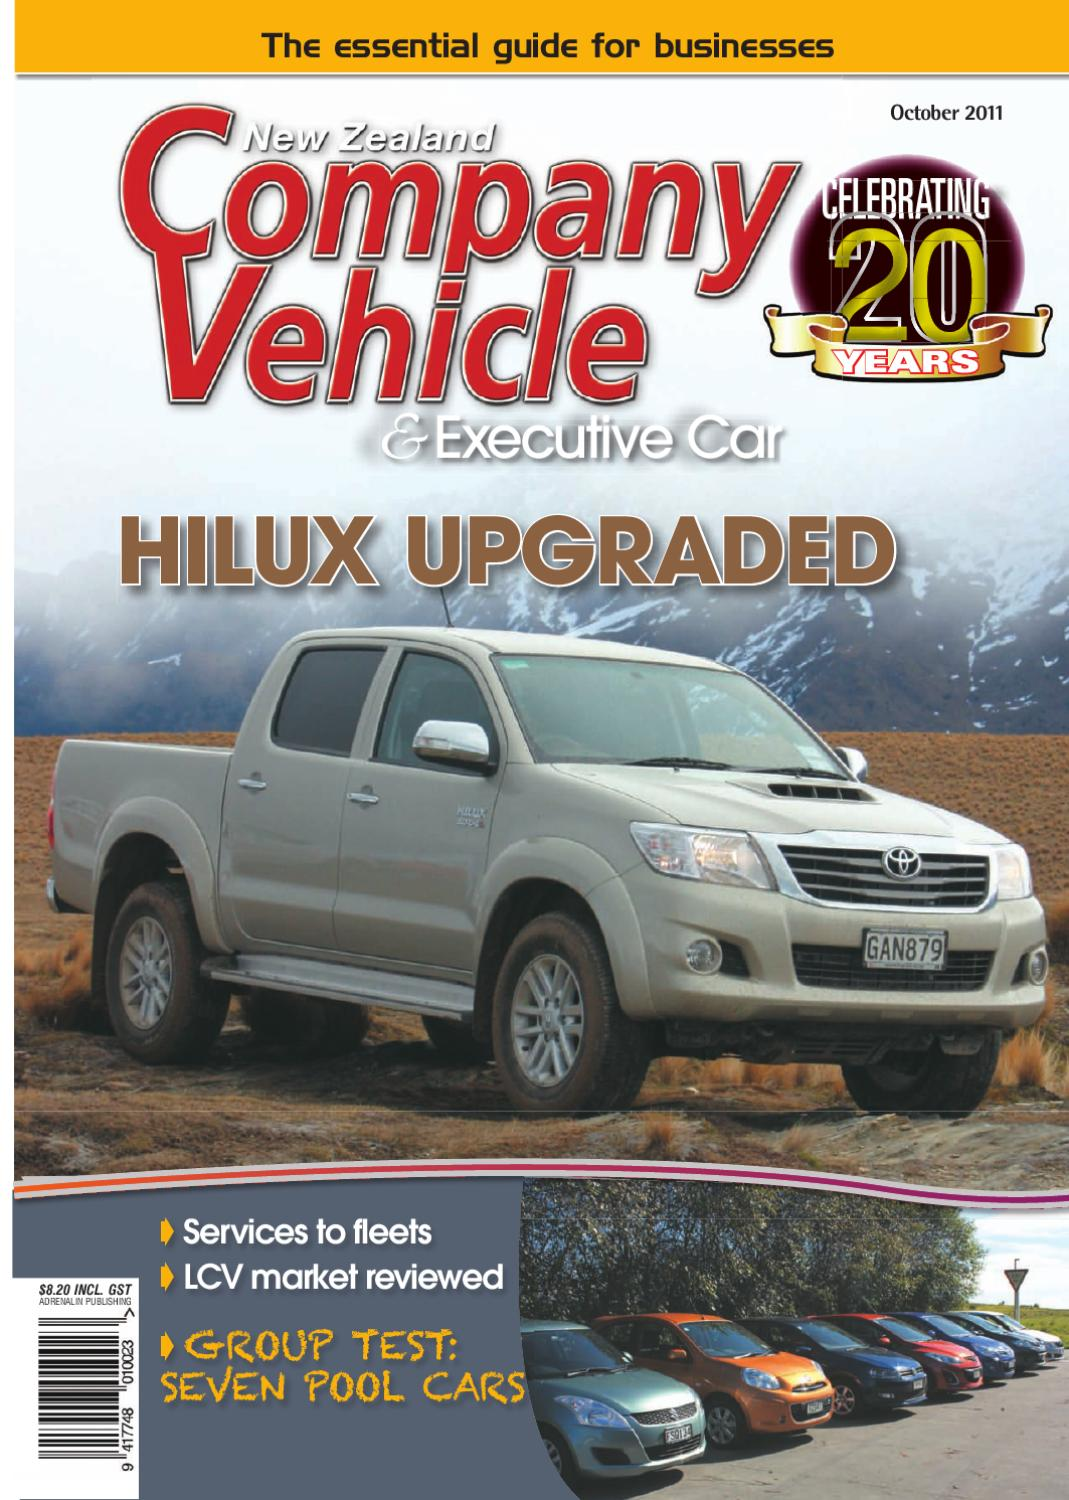 Diesel car issue 360 march 2017 by mimimi989 issuu fandeluxe Image collections